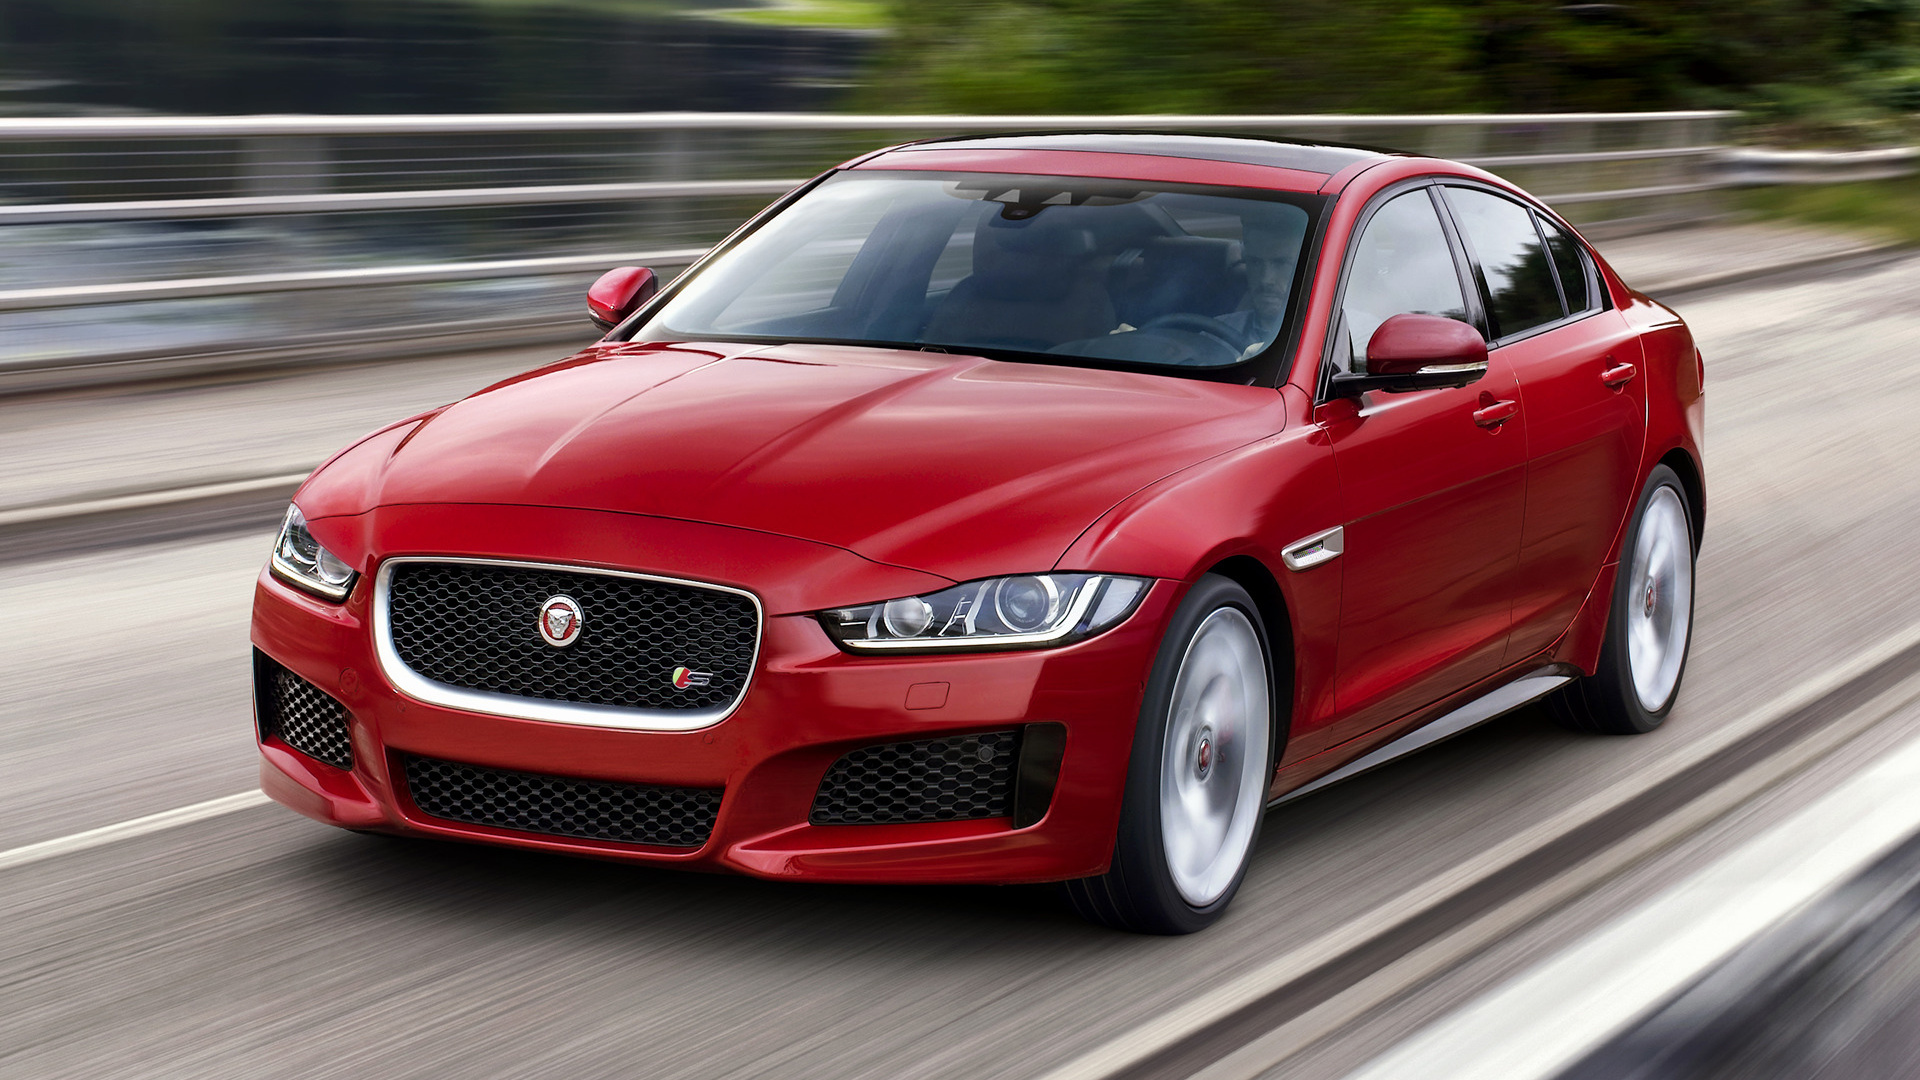 jaguar xe s 2015 wallpapers and hd images car pixel. Black Bedroom Furniture Sets. Home Design Ideas